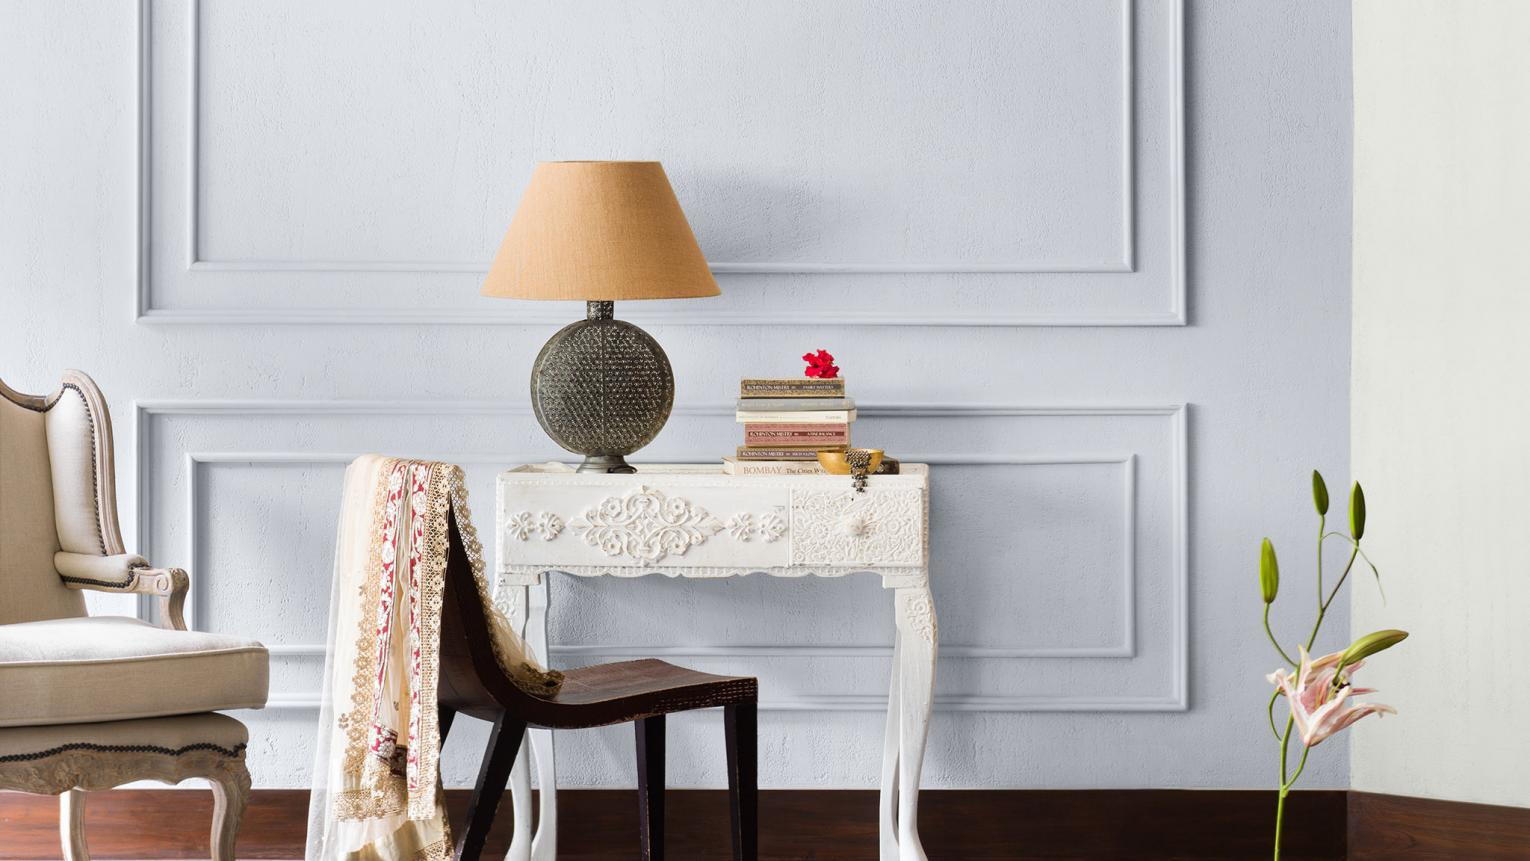 Warm white, cool white, or a mix of both? Discover when to paint warm and cool whites, and how to mix them for an elegantly understated look